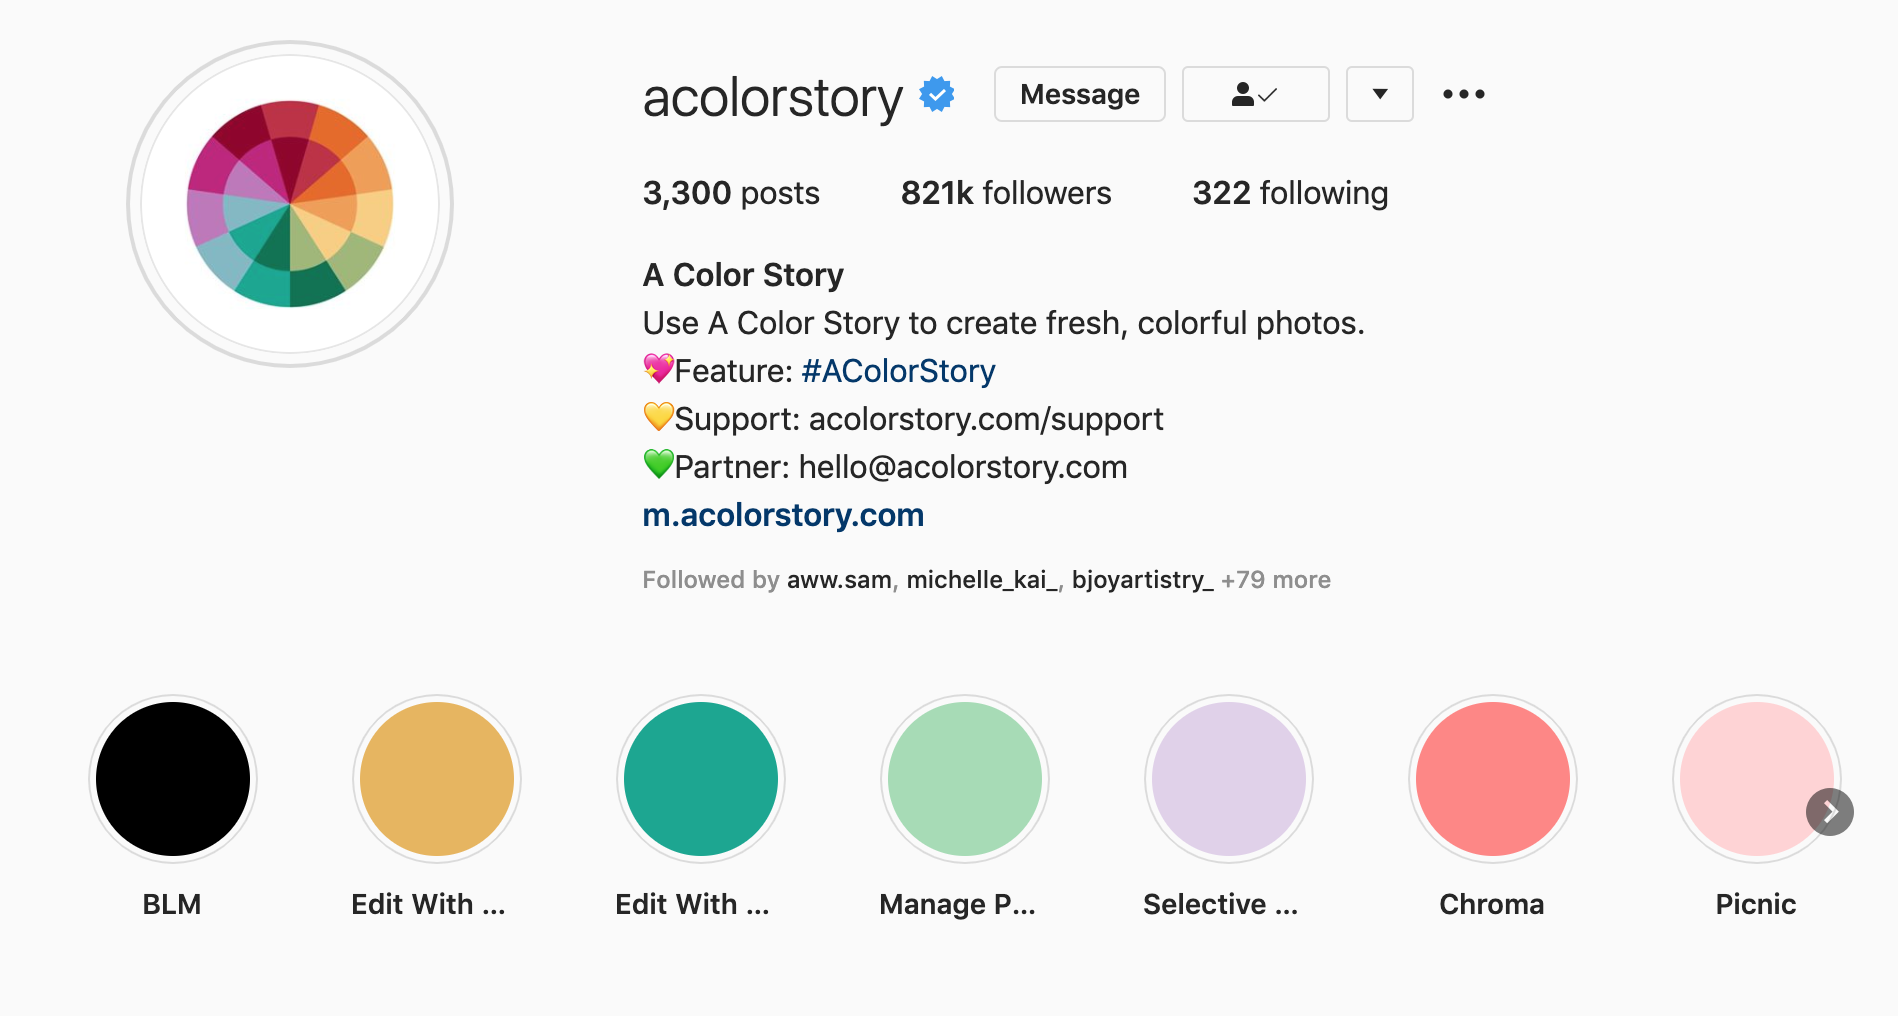 brand community - a color story hashtag